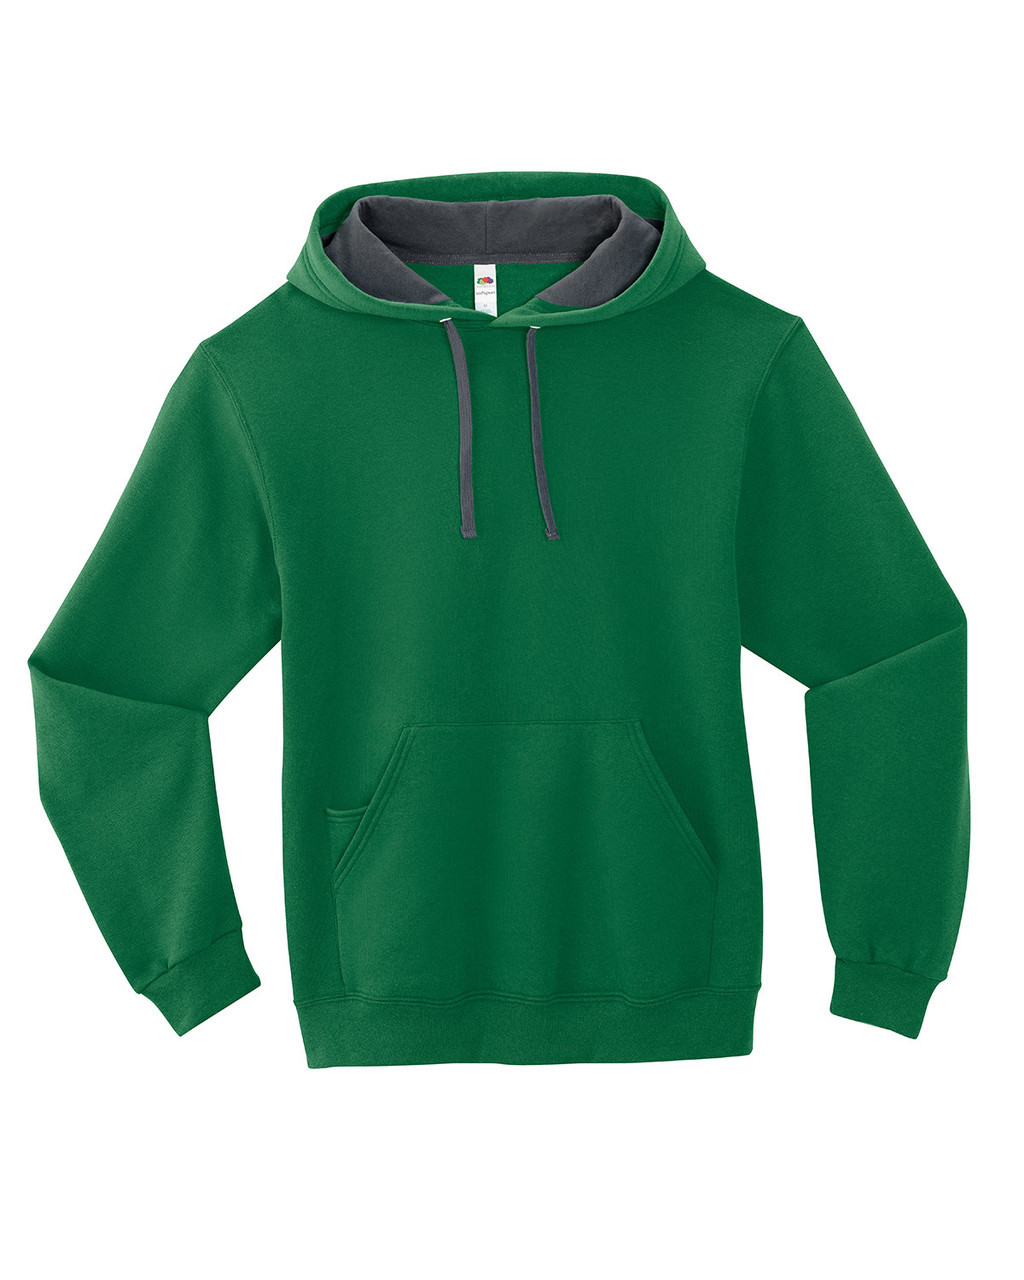 Clover - SF76R Fruit of the Loom Softspun Hooded Sweatshirt | Blankclothing.ca